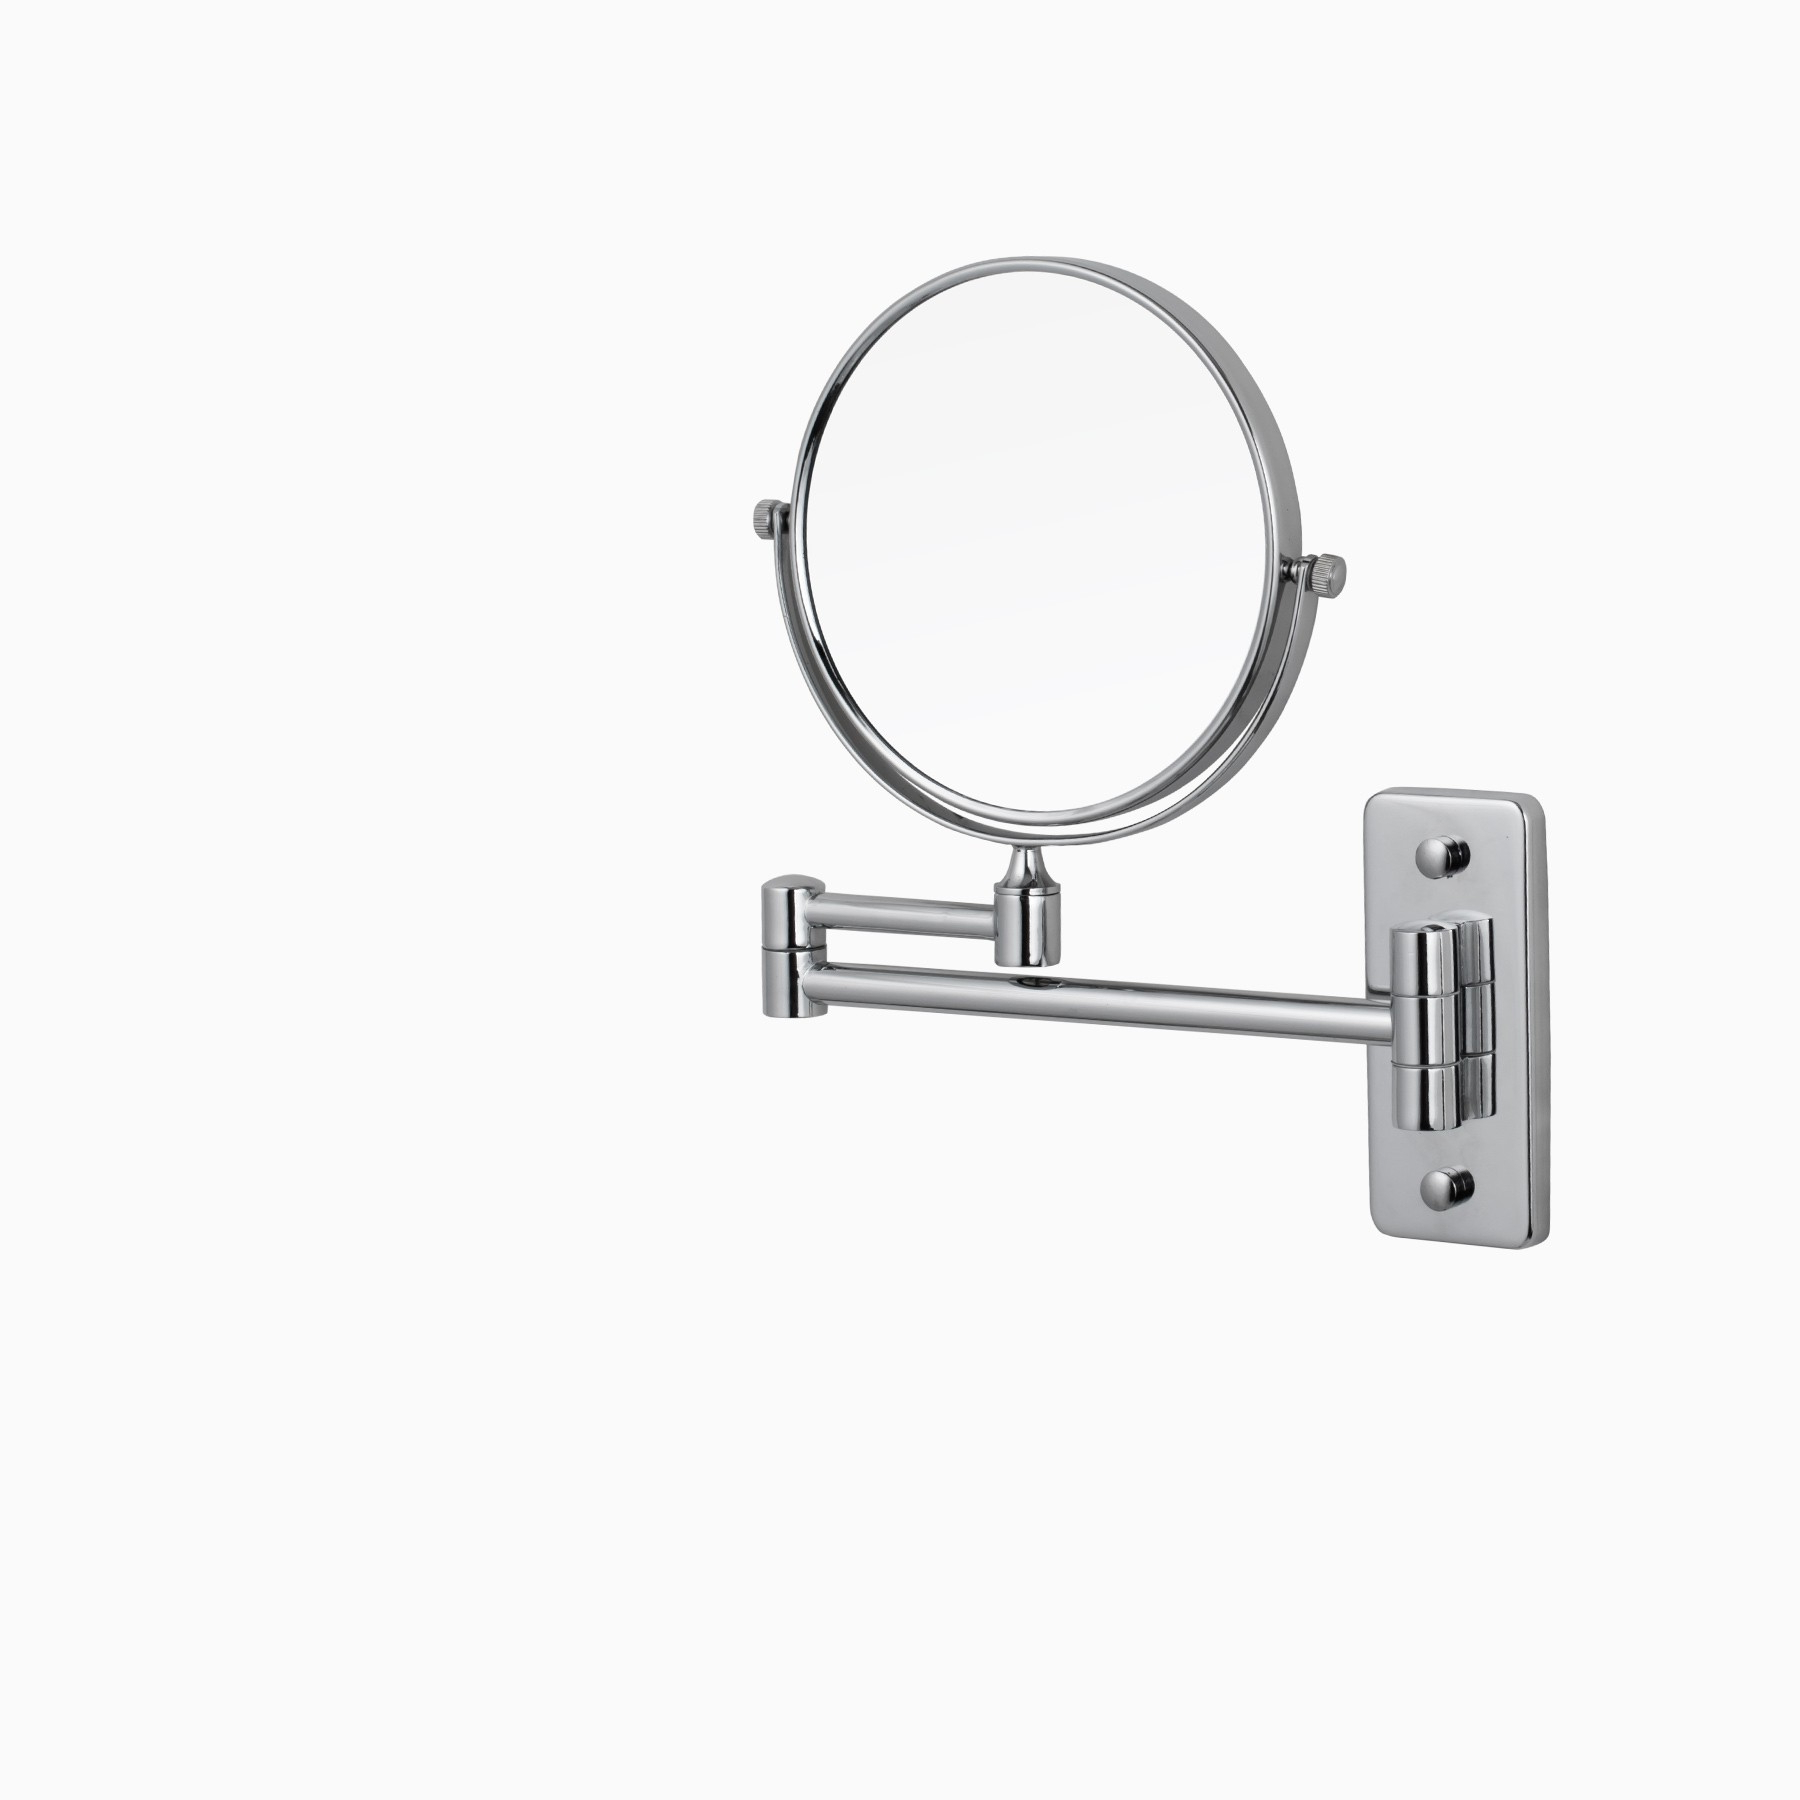 Windor Wall Mount Make Up Mirror With Adjustable Arm, Polished Chrome For Well Known Adjustable Wall Mirrors (View 20 of 20)